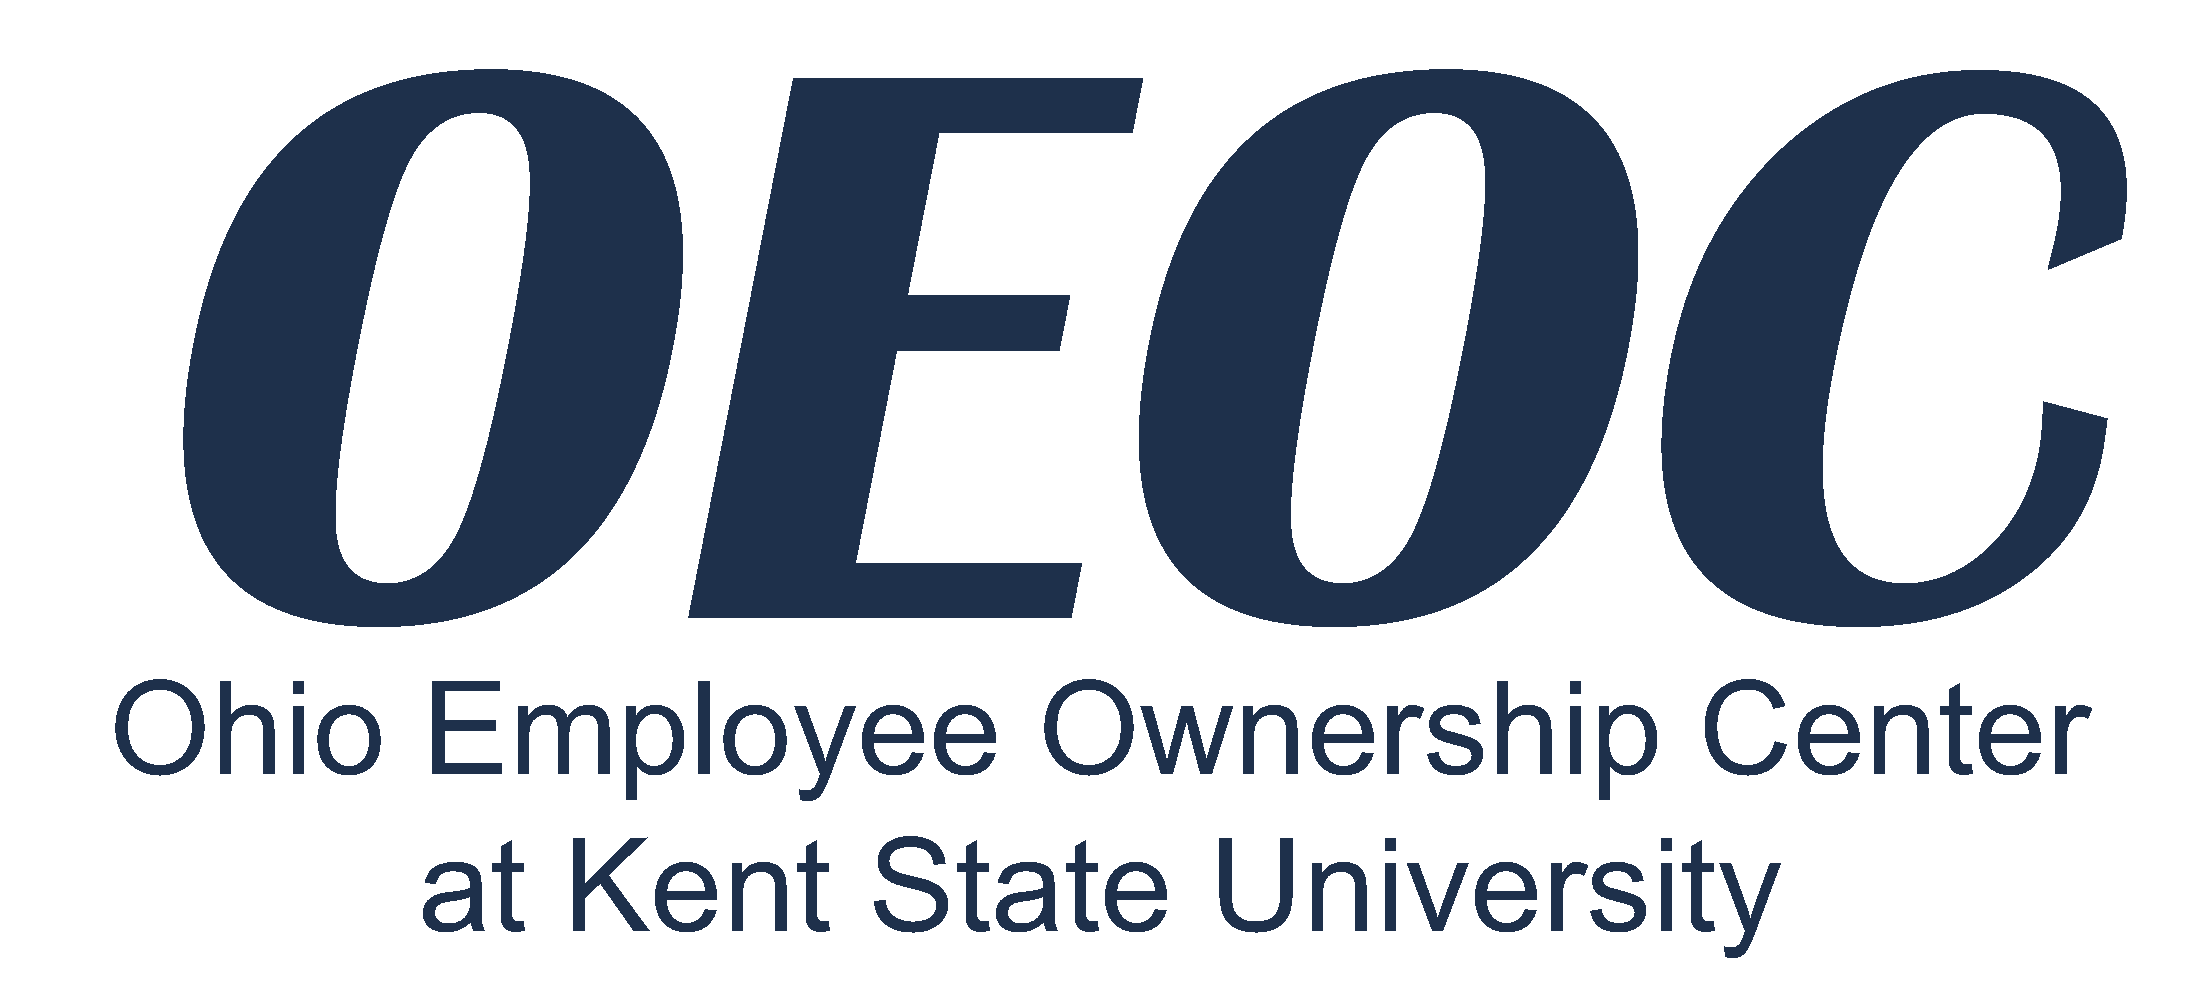 Ohio Employee Ownership Center (OEOC)